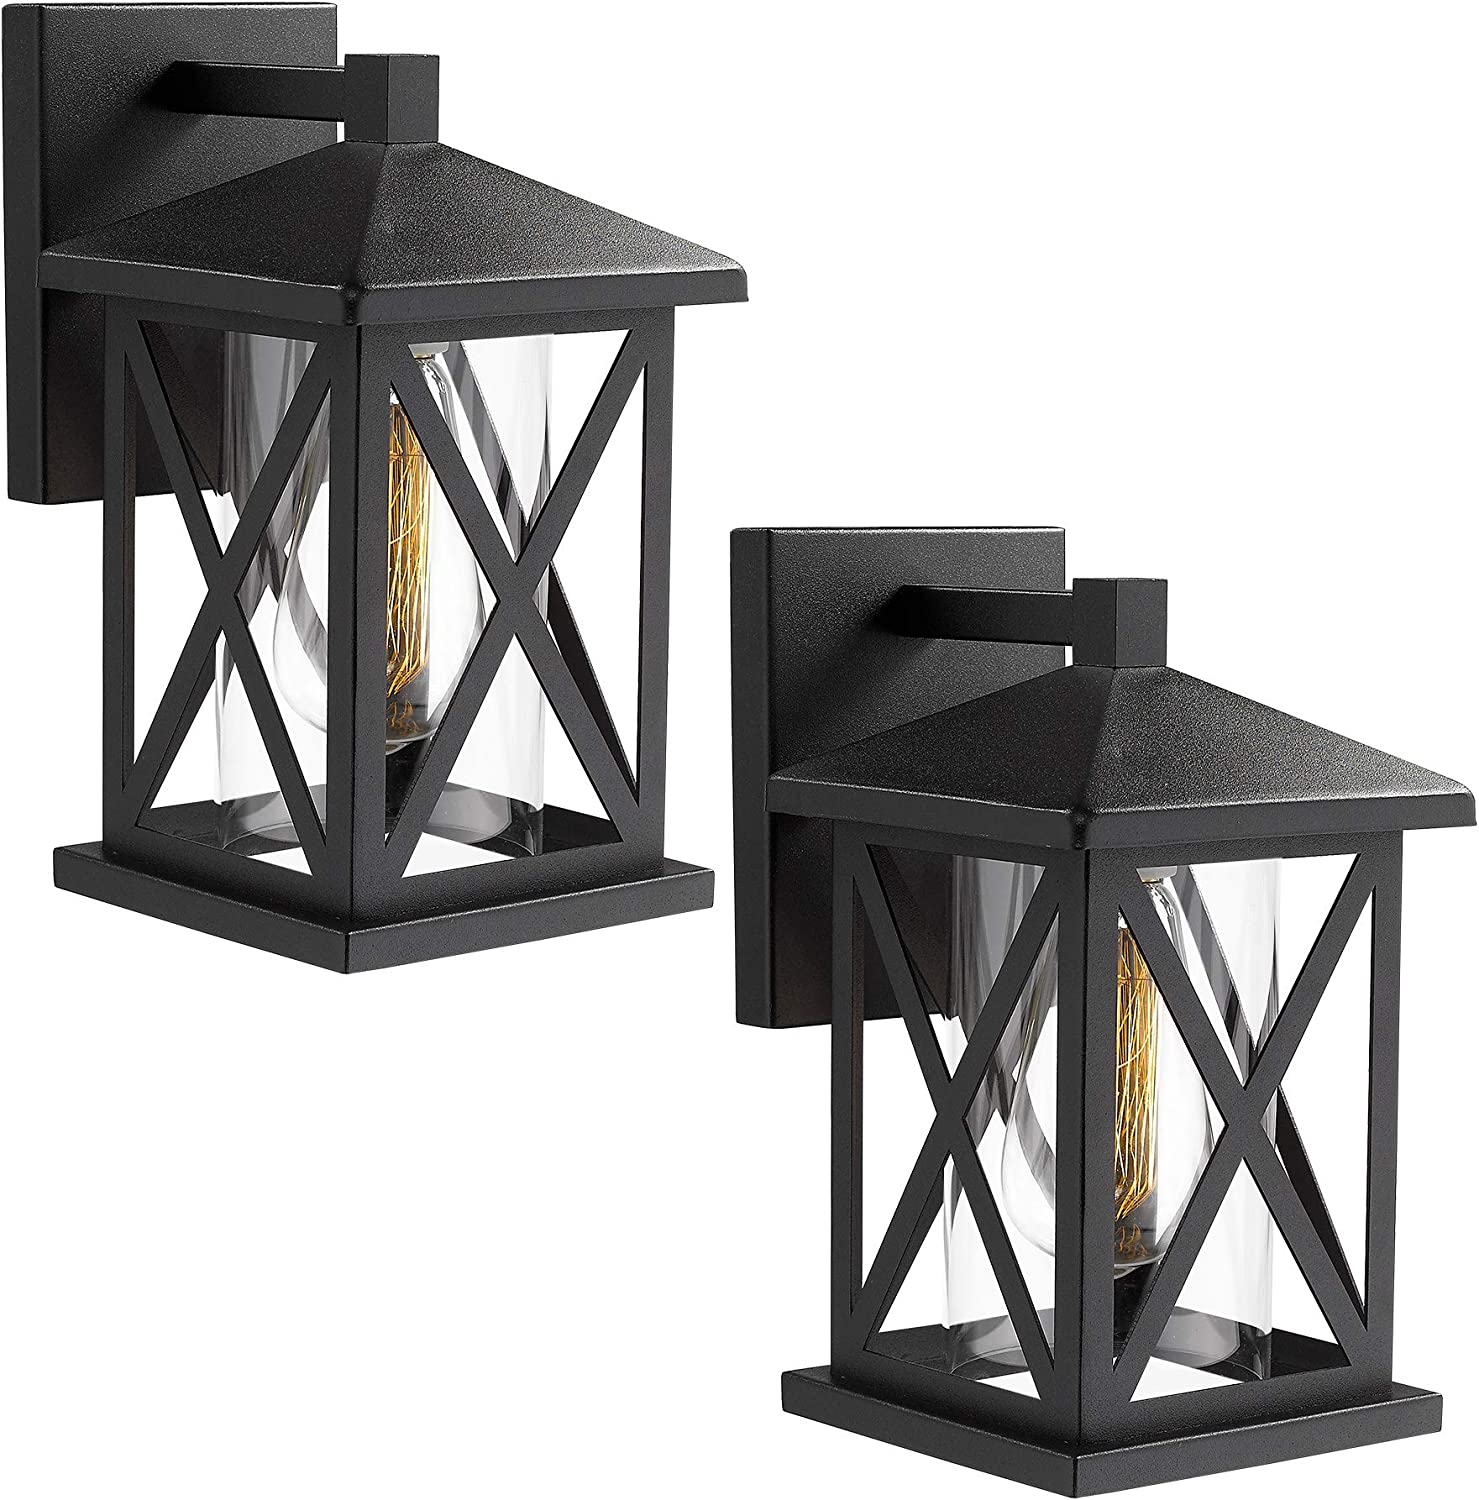 JAZAVA Max 59% At the price of surprise OFF Outdoor Wall-Mount Light Exter 2-Pack Fixtures Industrial